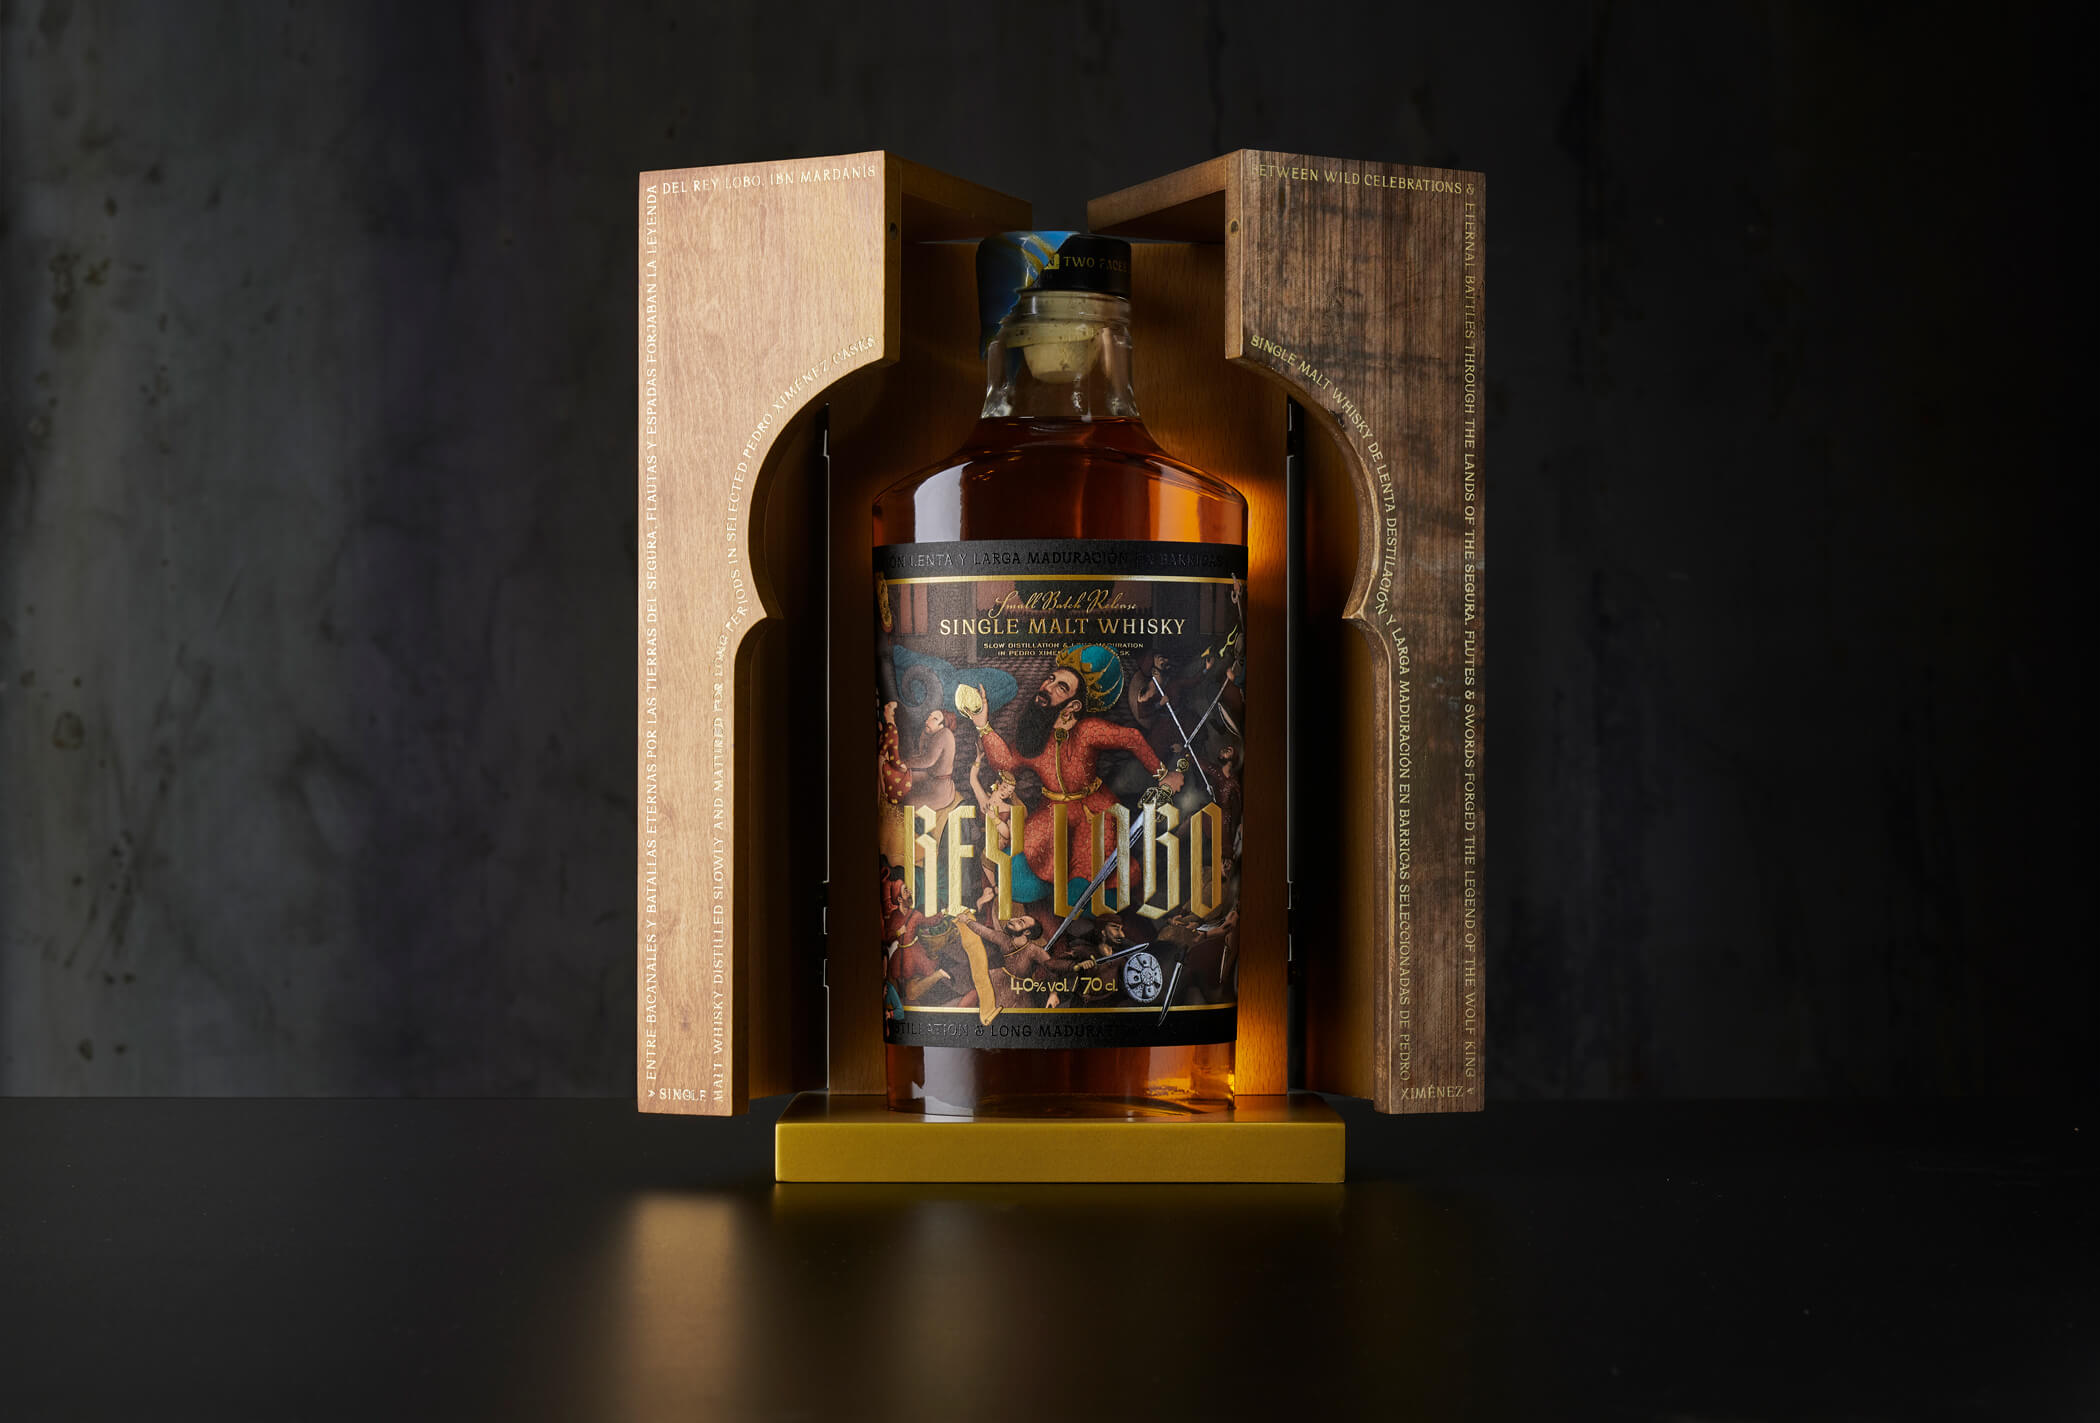 Rey Lobo Whisky Label and Packaging Design by Maba